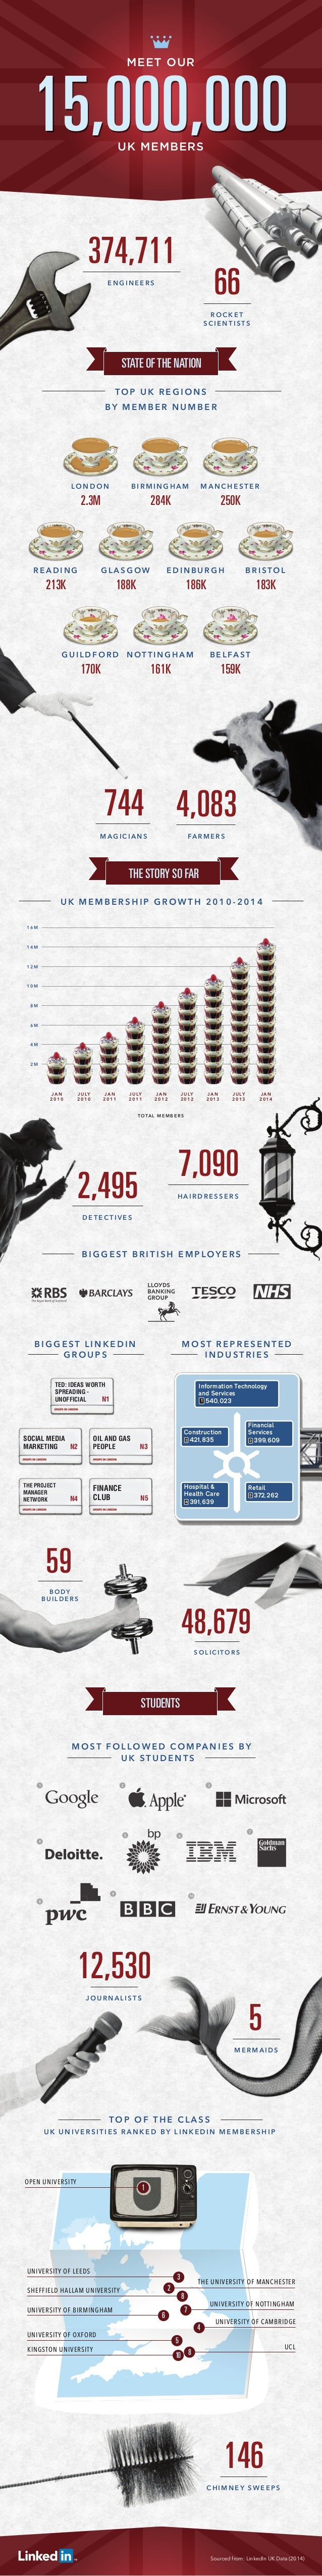 15 Million LinkedIn Members in UK